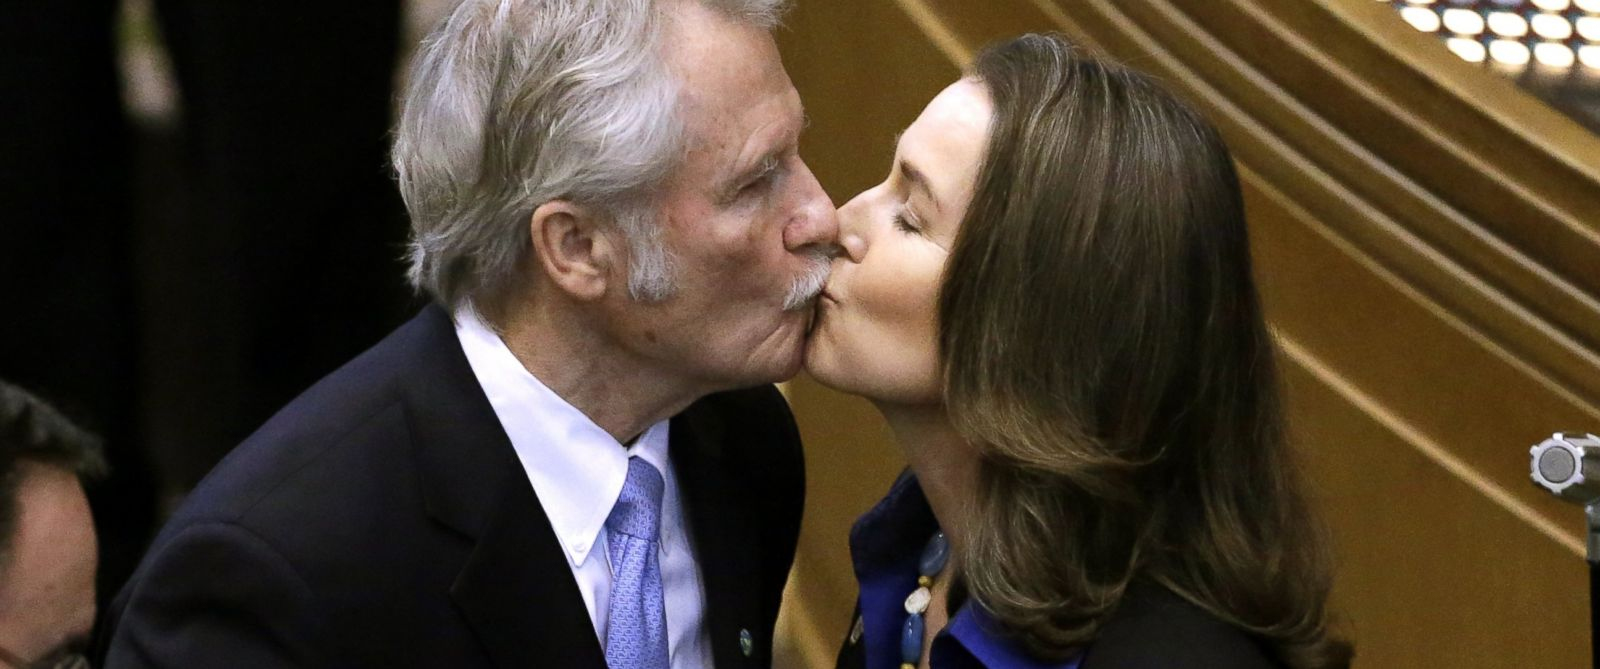 PHOTO: Oregon Gov. John Kitzhaber kisses fiancee, Cylvia Hayes, after he is sworn in for an unprecedented fourth term as Governor in Salem, Ore. in this Jan. 12, 2015 file photo.